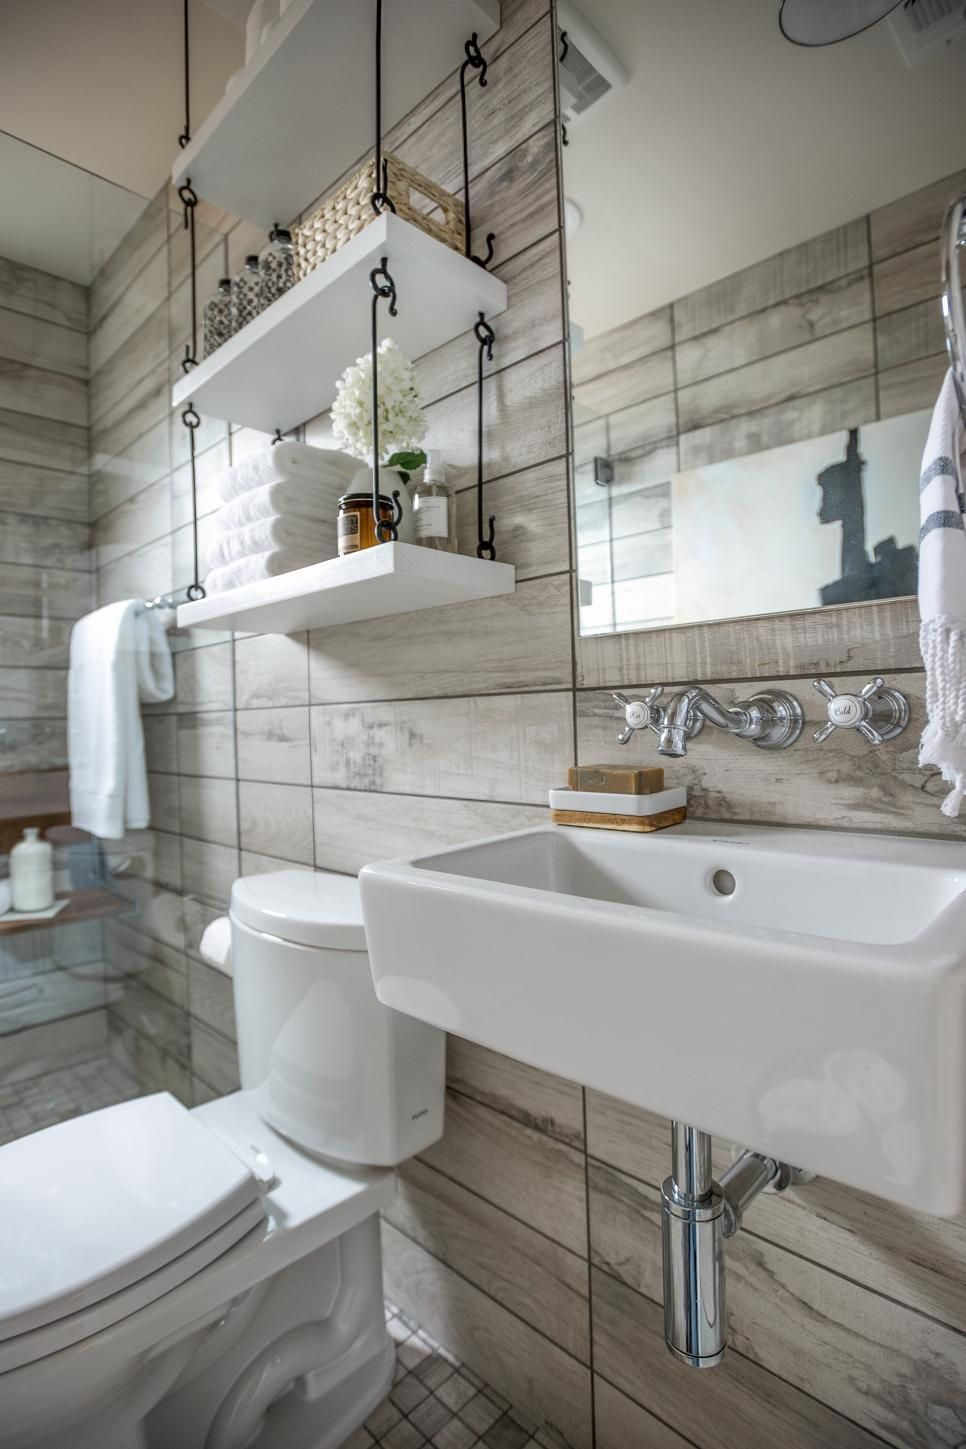 Bathroom Pictures From HGTV Smart Home 2015 (With Images